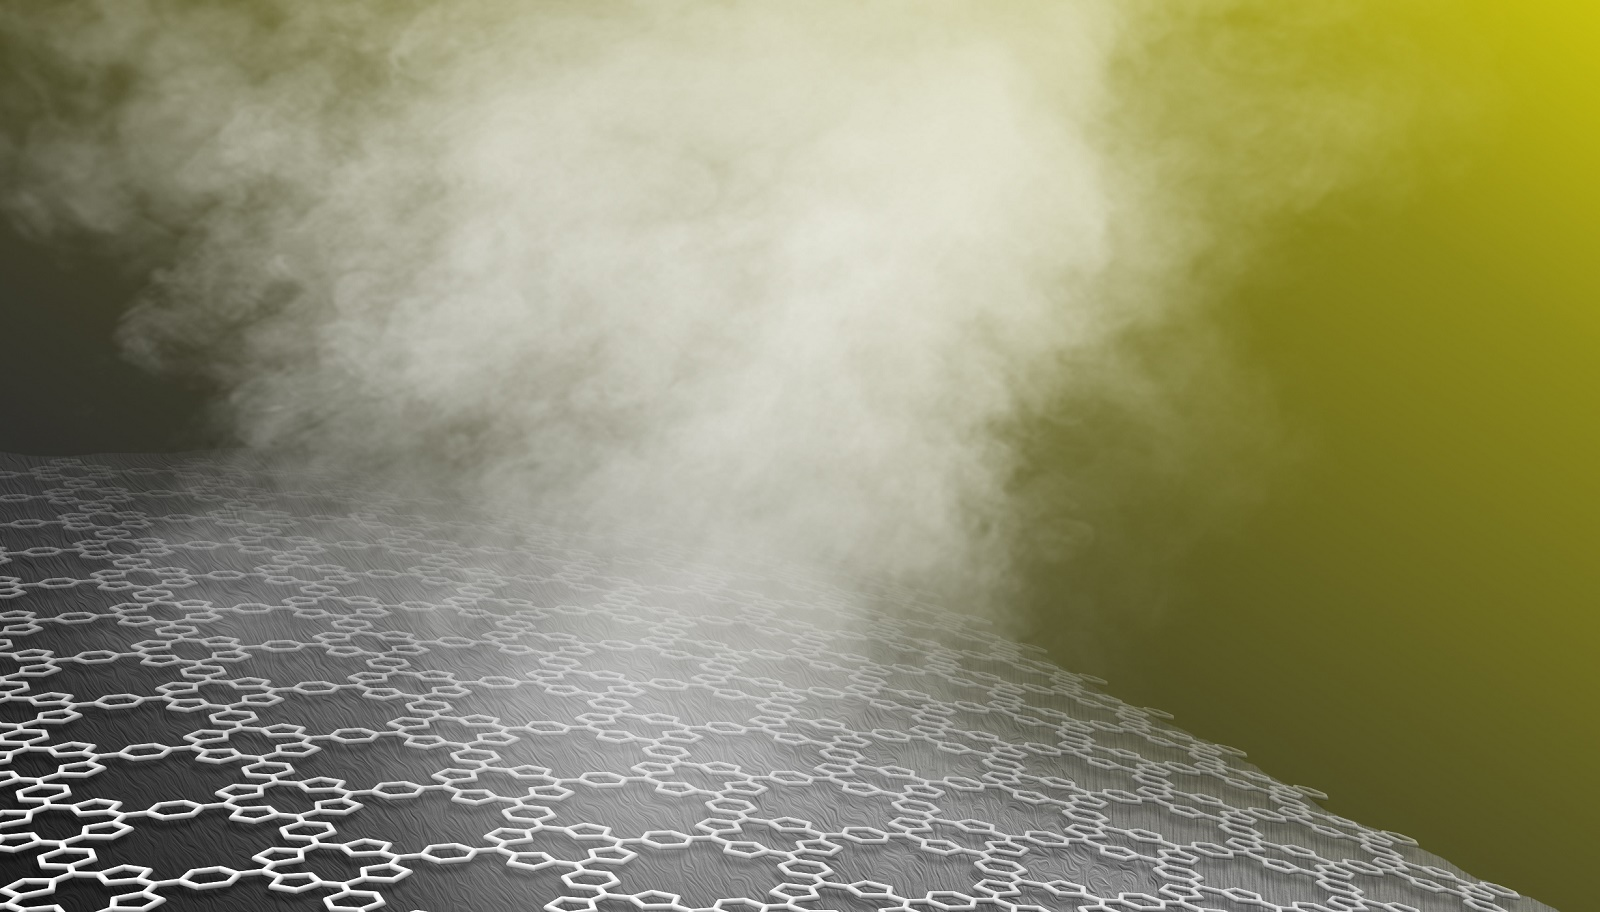 A schematic representation of a POF-coated surface generating steam (Image by Argonne National Laboratory.)